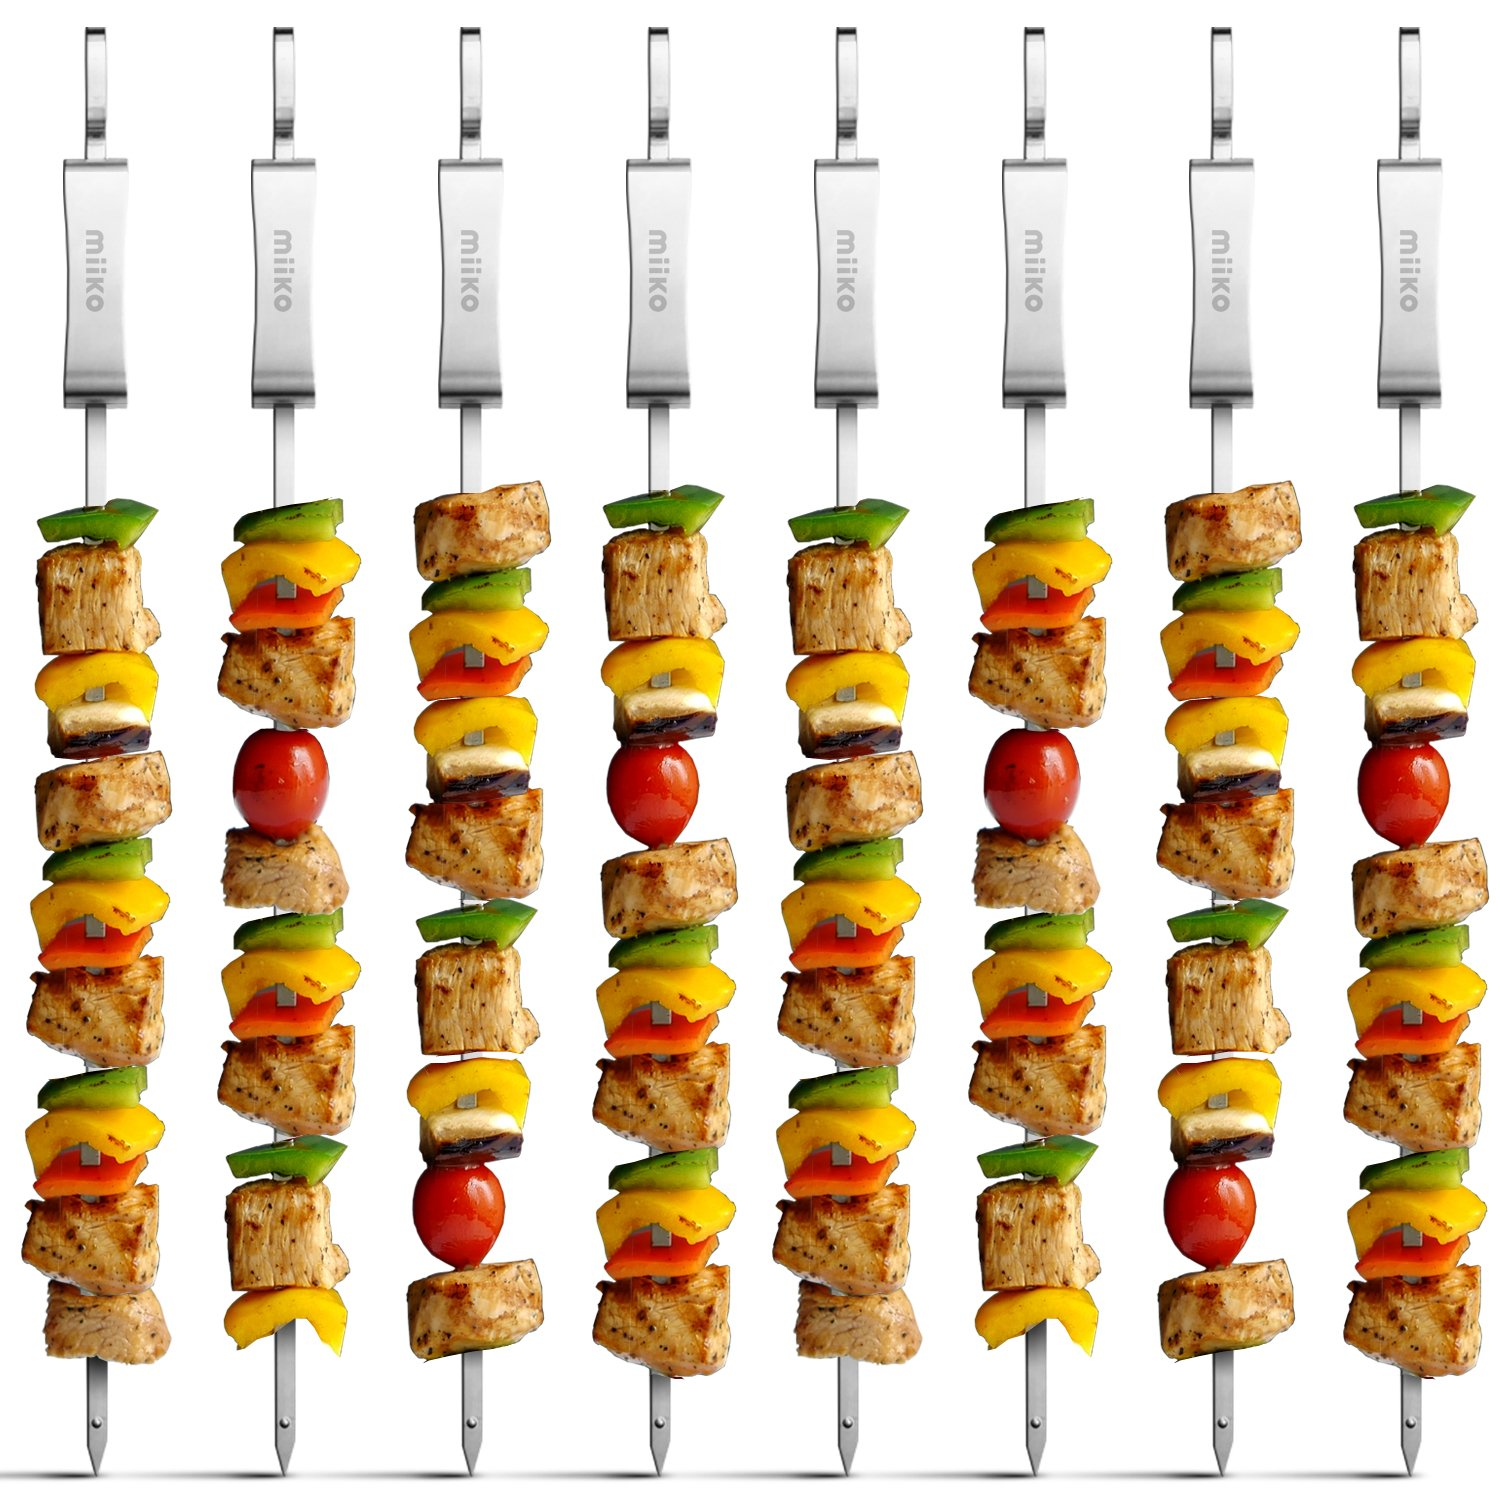 MiiKO Metal BBQ Kabob skewers - 8 Extra Long 16 inch Stainless Steel Grill skewers with Sliding Handles & Recipe e-Book